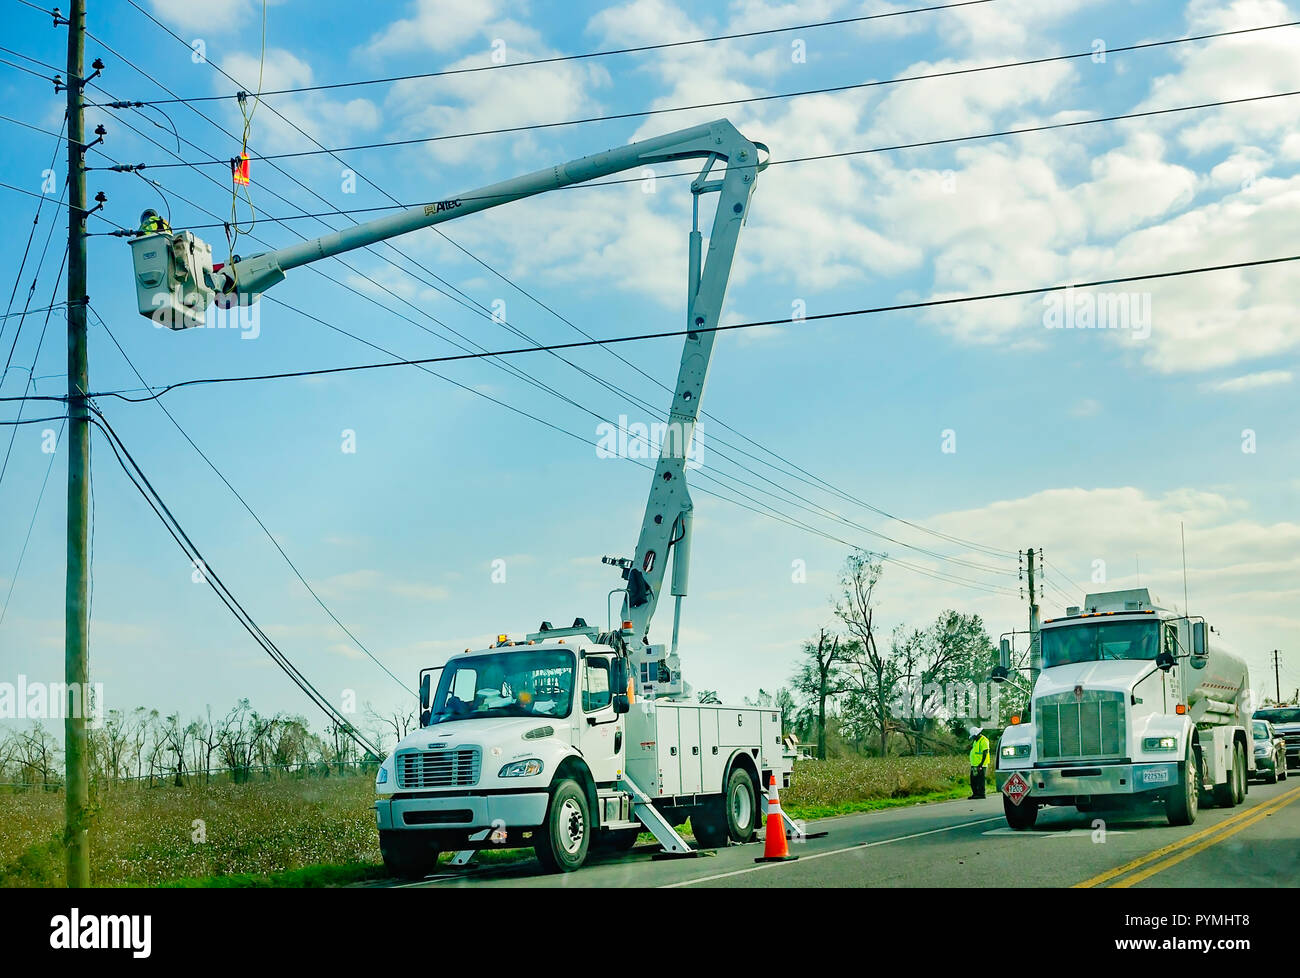 A utility crew lineman works to restore power to a neighborhood, Oct. 18, 2018, in Marianna, Florida. Coastal cities as well as inland cities like Mar - Stock Image